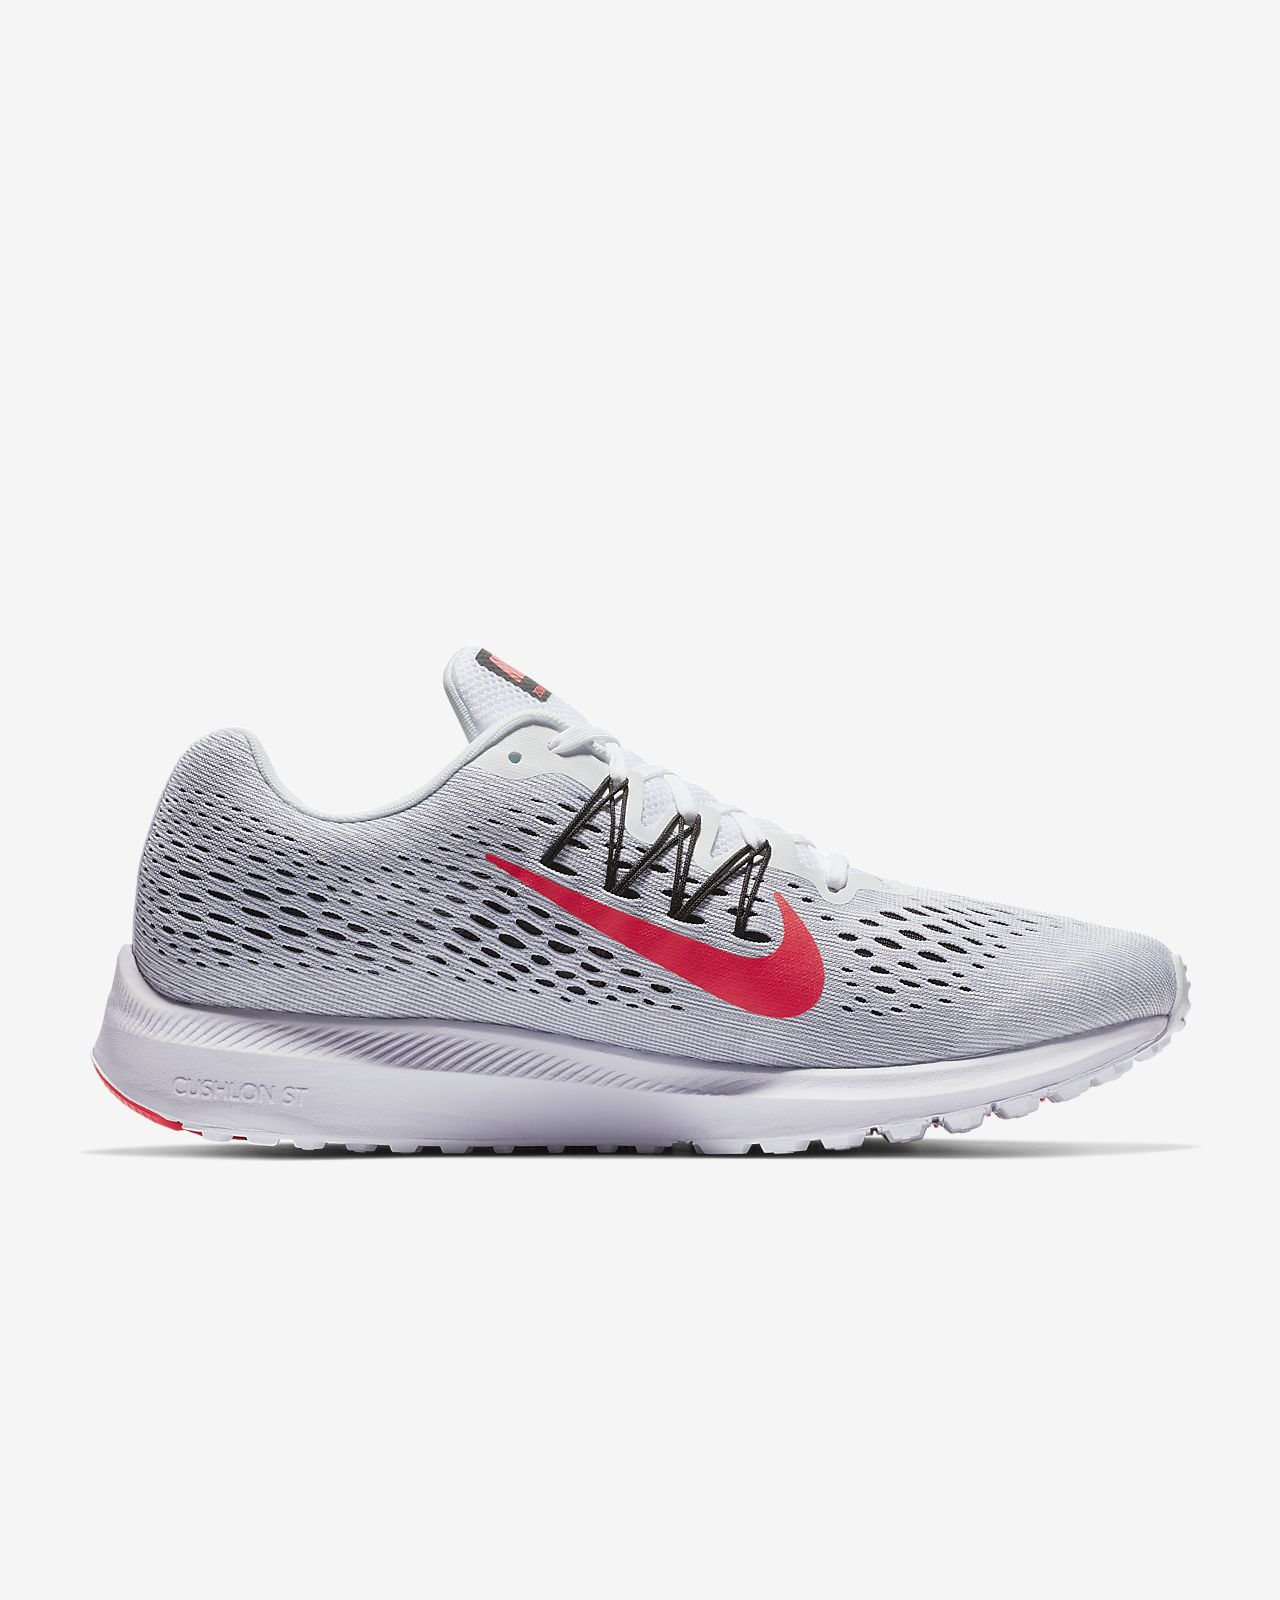 new style 83859 61e7a ... Nike Air Zoom Winflo 5 Men s Running Shoe